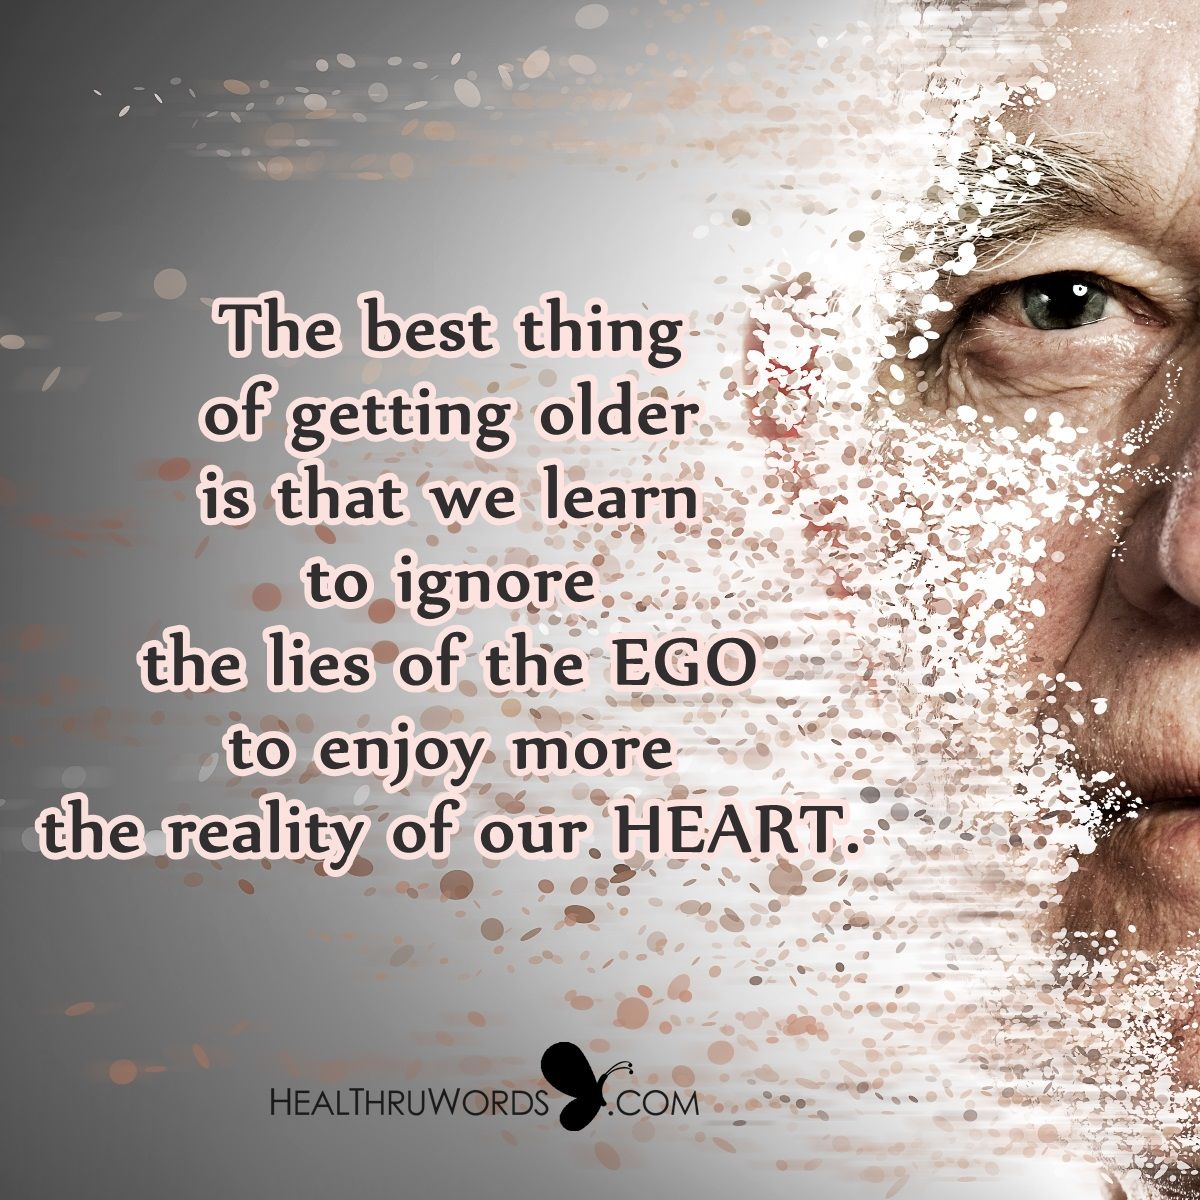 Quotes About Aging: Inspirational Quotes Aging - Google Search